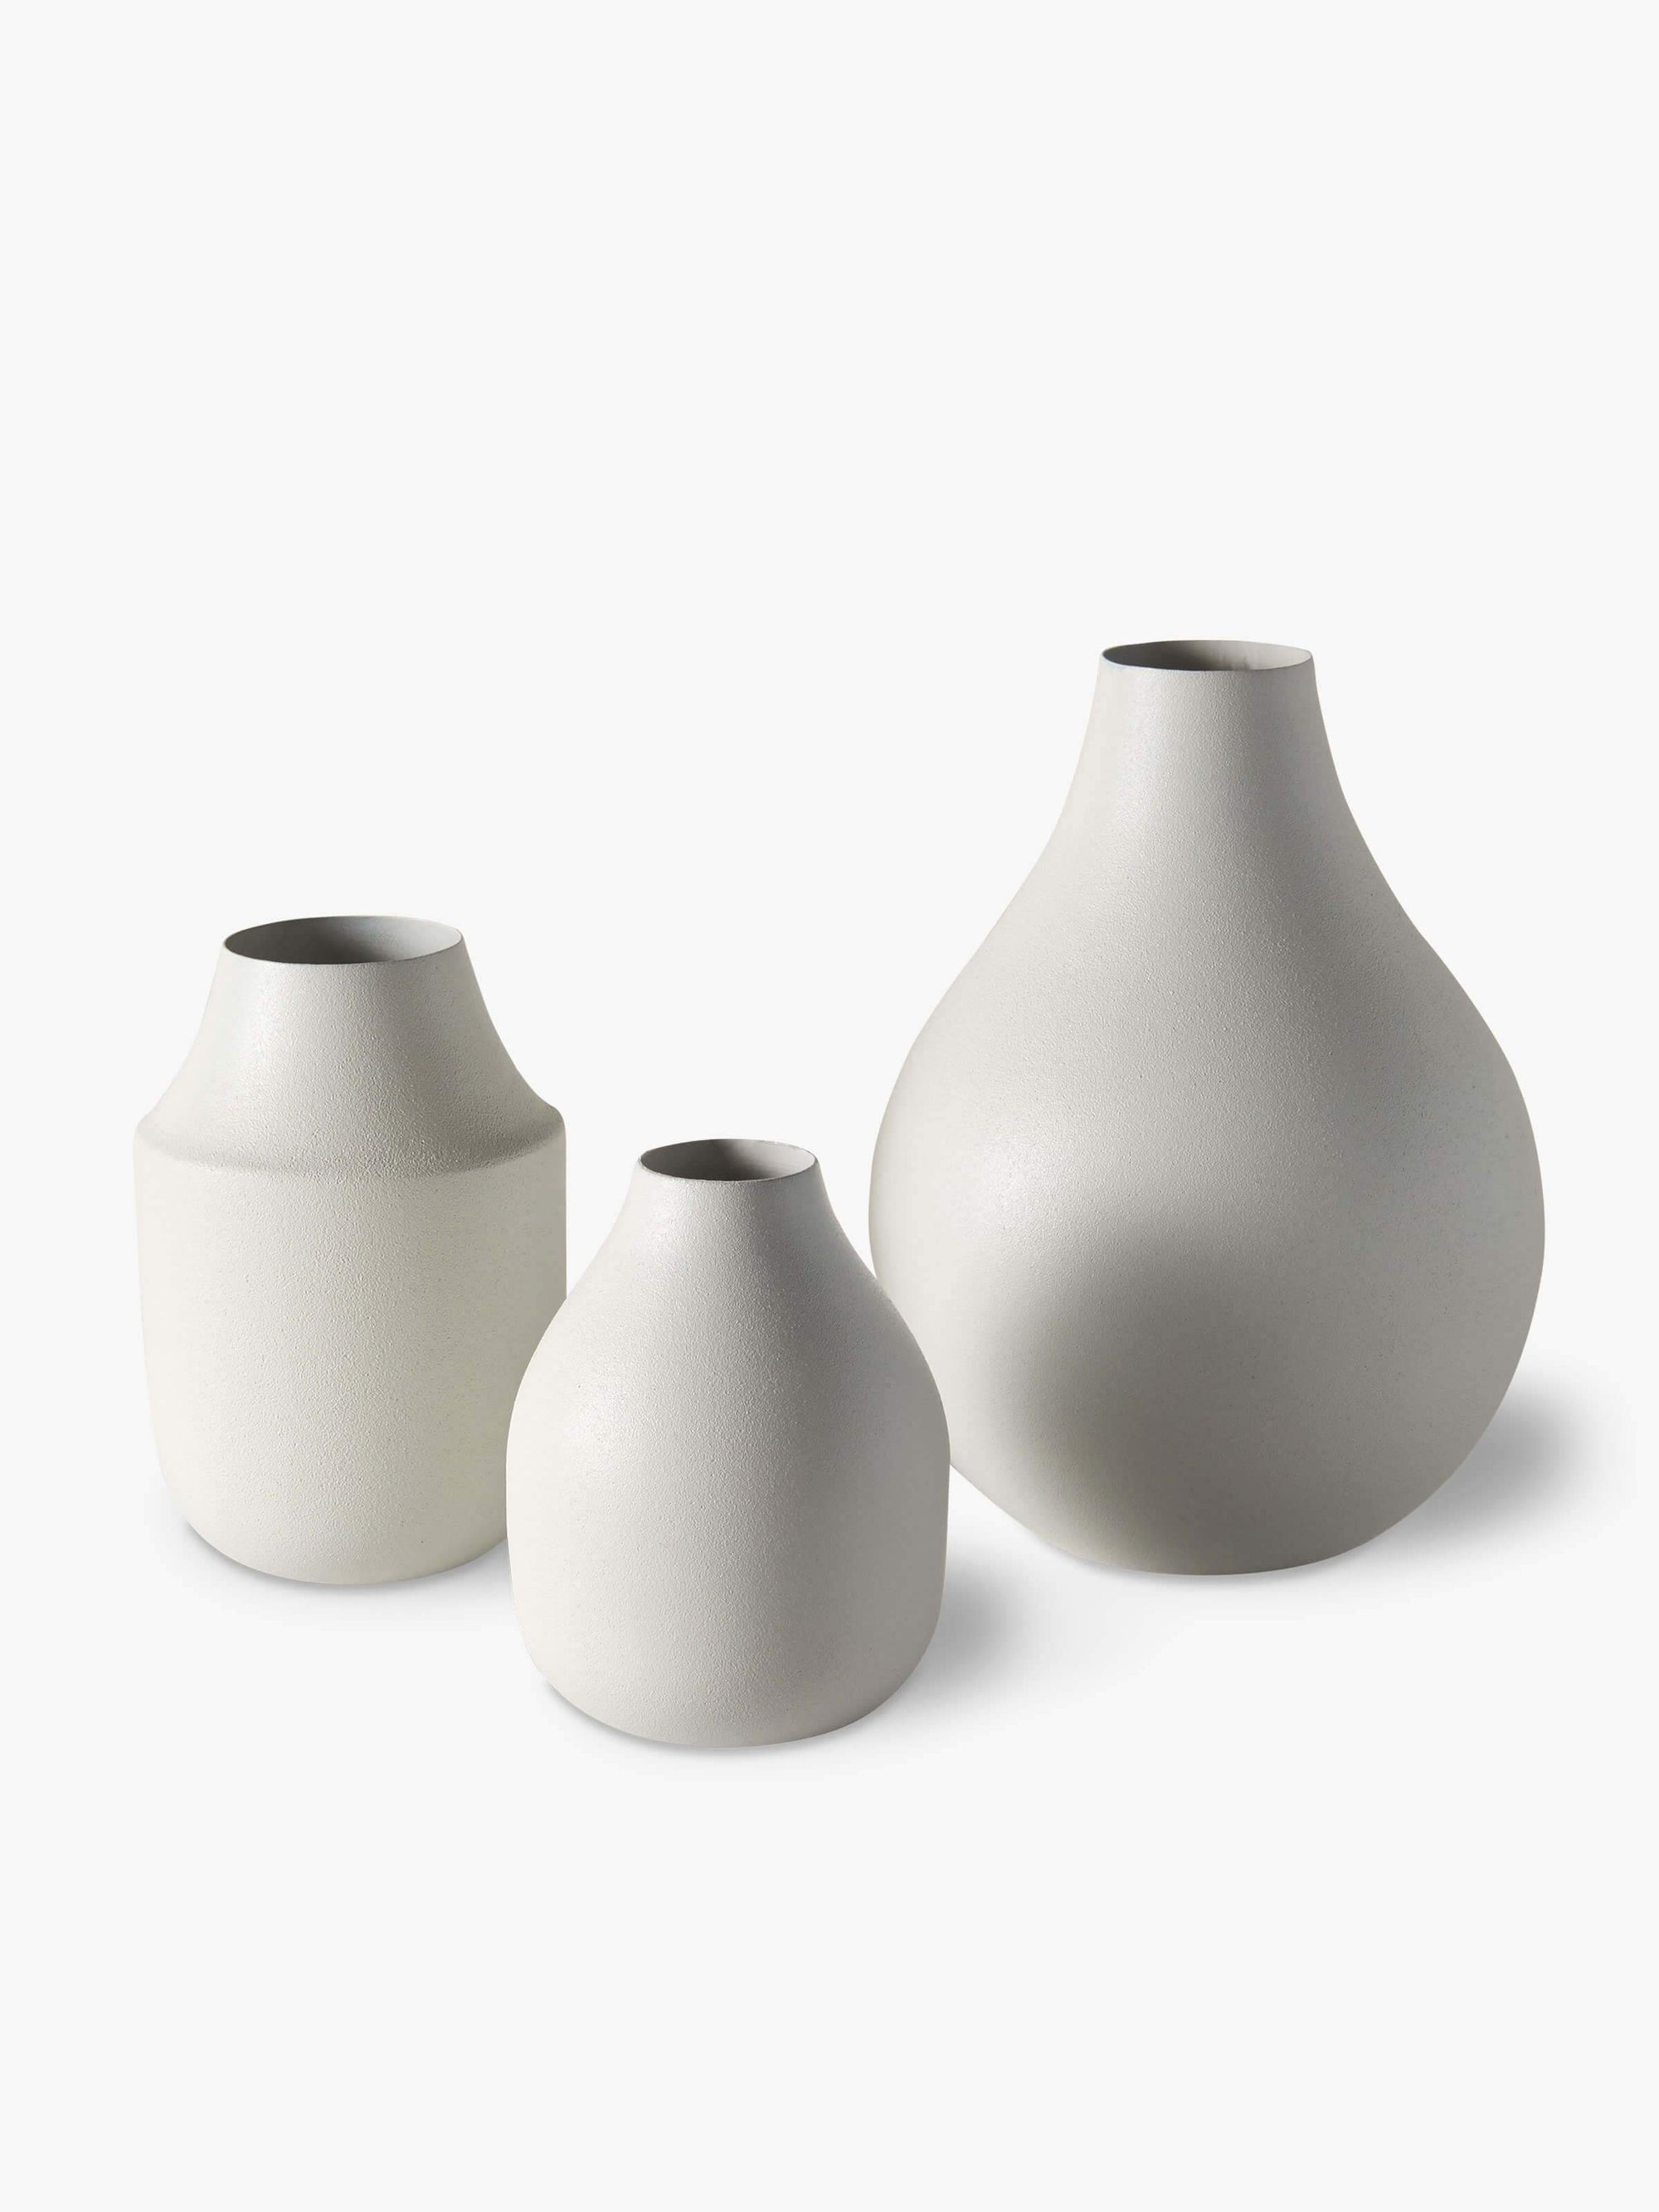 Mona Trio of Vases - Chalk Vase 2020